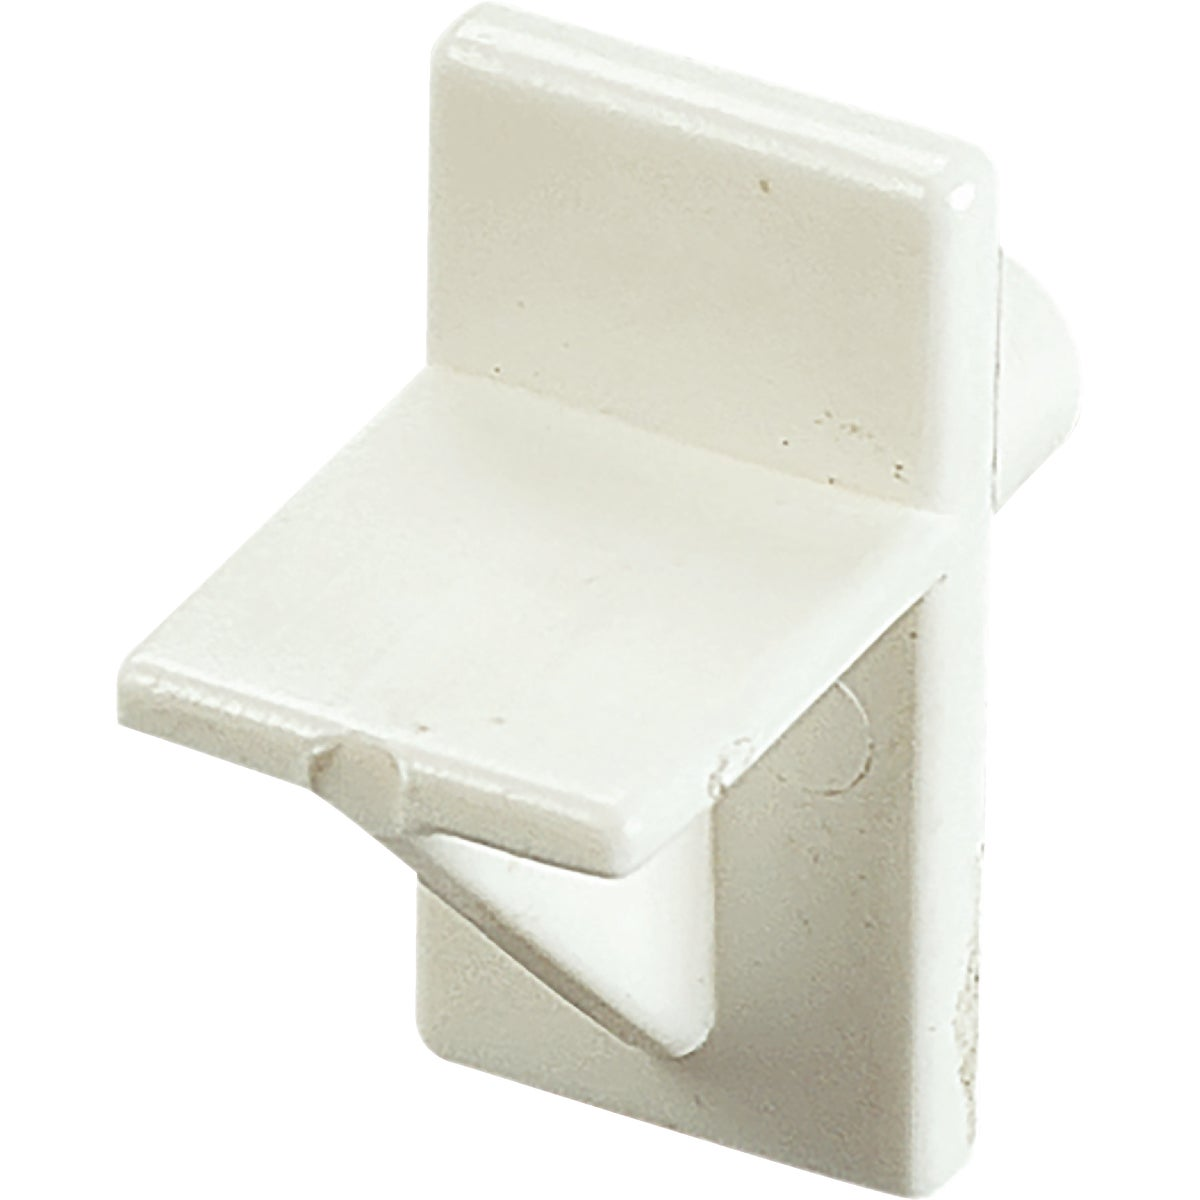 PLASTIC SHELF SUPPORT - 335 by Knape & Vogt Mfg Co